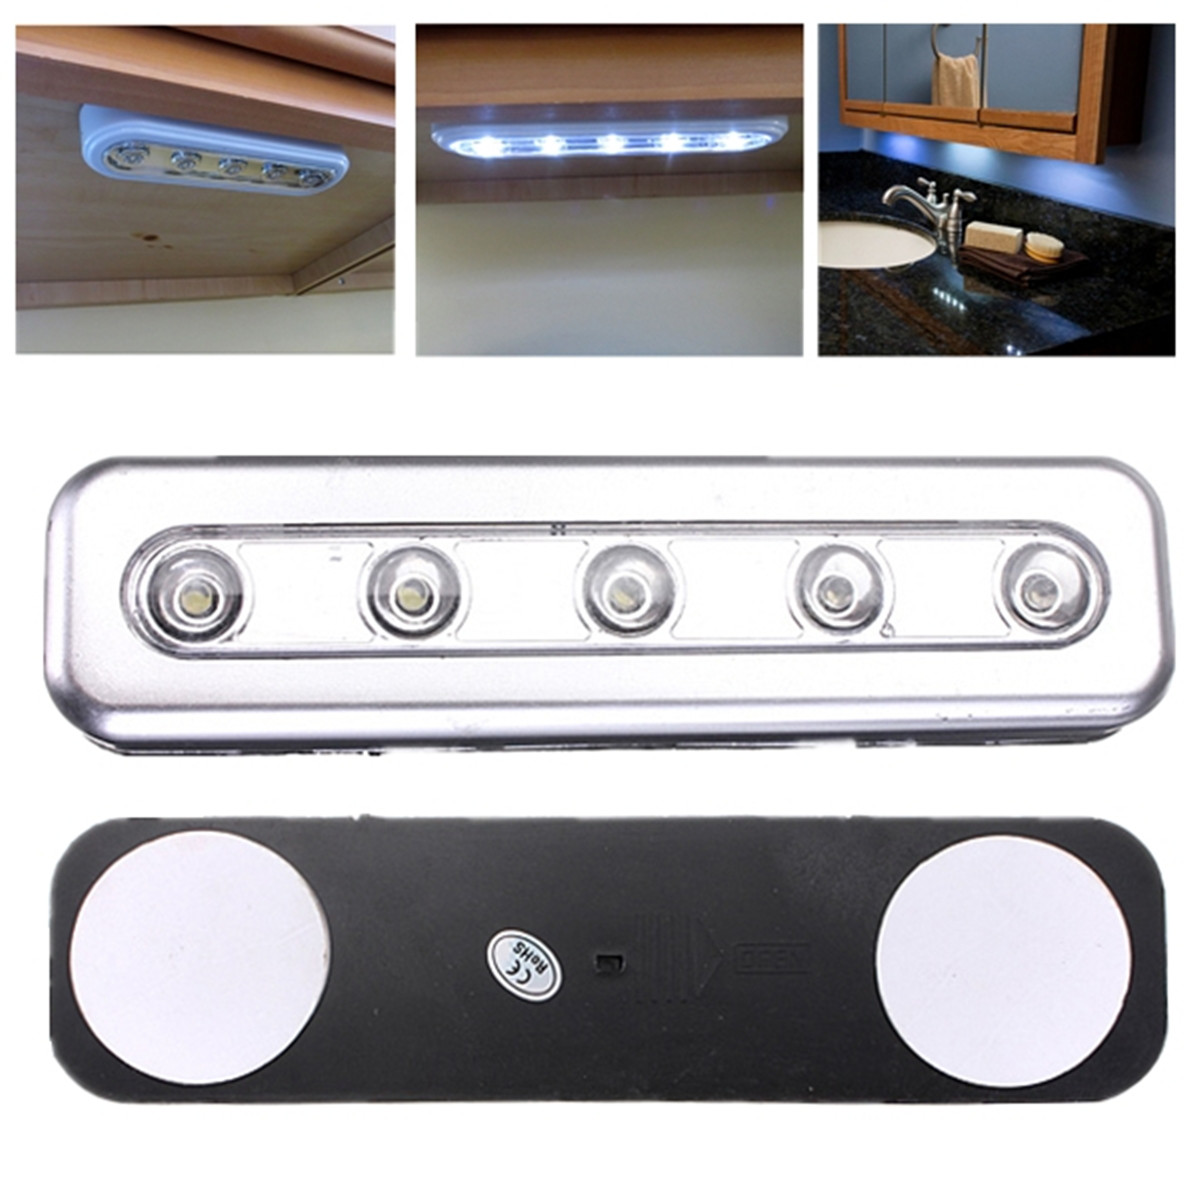 5 LED Light Tube Under Cabinet Push Tap Touch Night Light Emergency ...